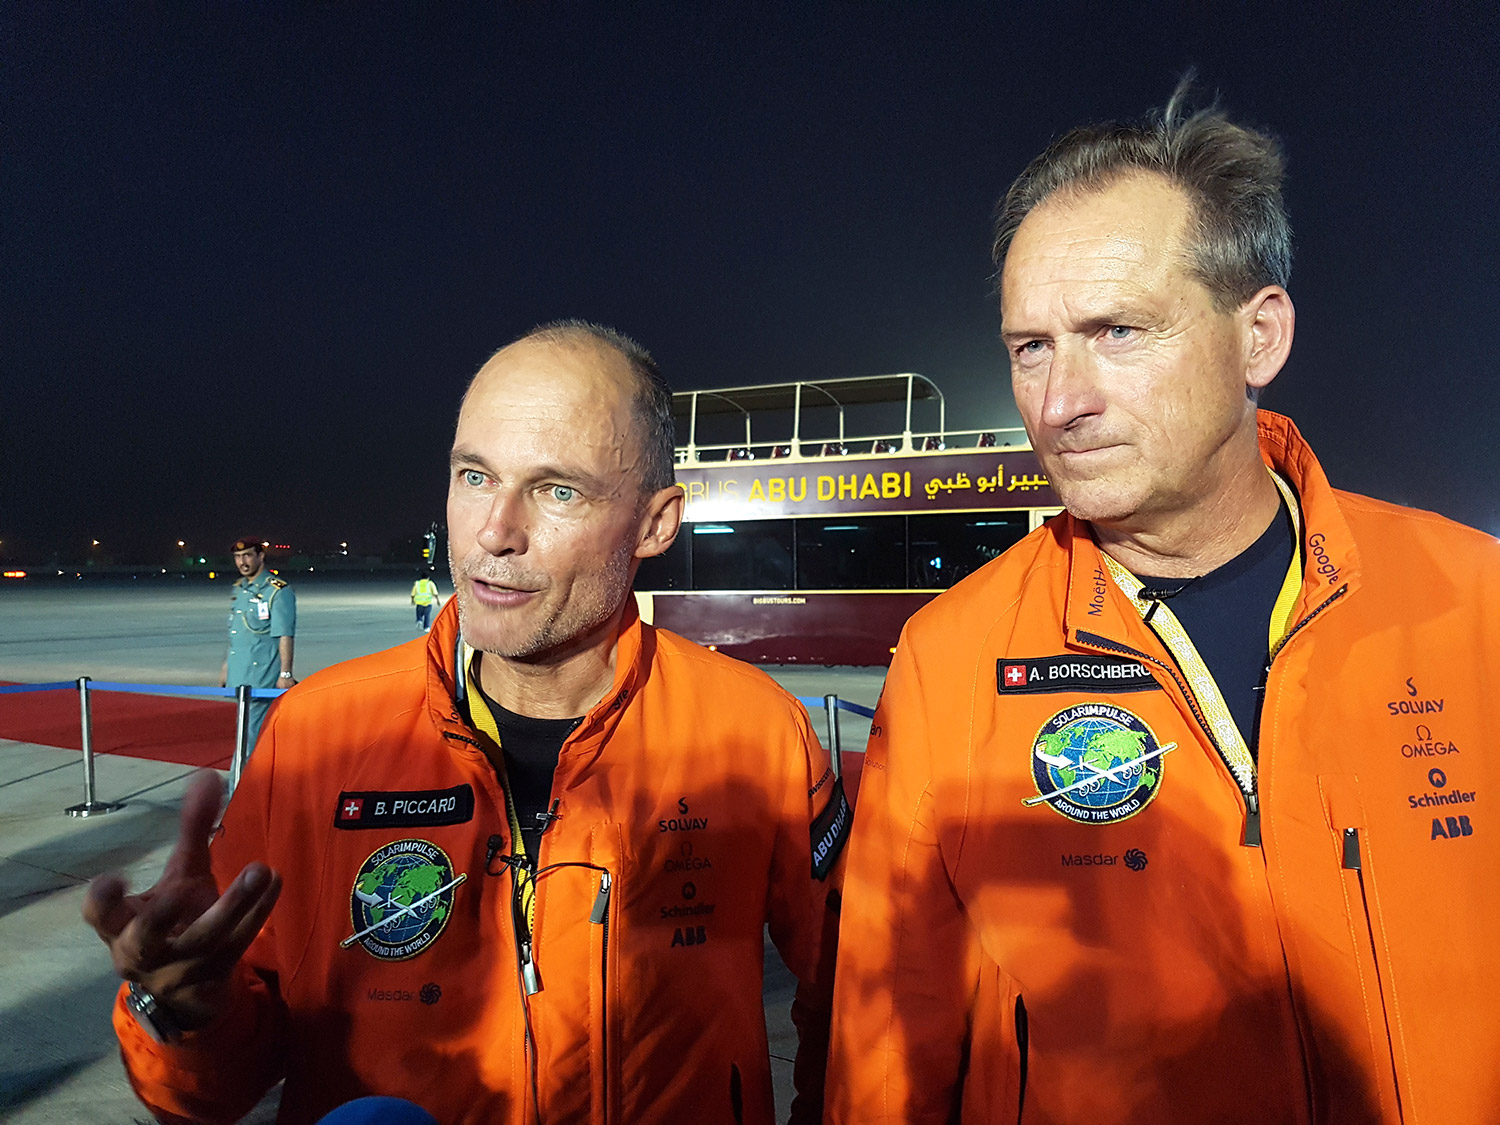 Solar Impulse 2 pilots Bertrand Piccard, left, and Andre Borschberg celebrate after their plane landed in an airport in Abu Dhabi, United Arab Emirates, early Tuesday, marking the historic end of the first attempt to fly around the world without a drop of fuel, powered solely by the sun's energy.